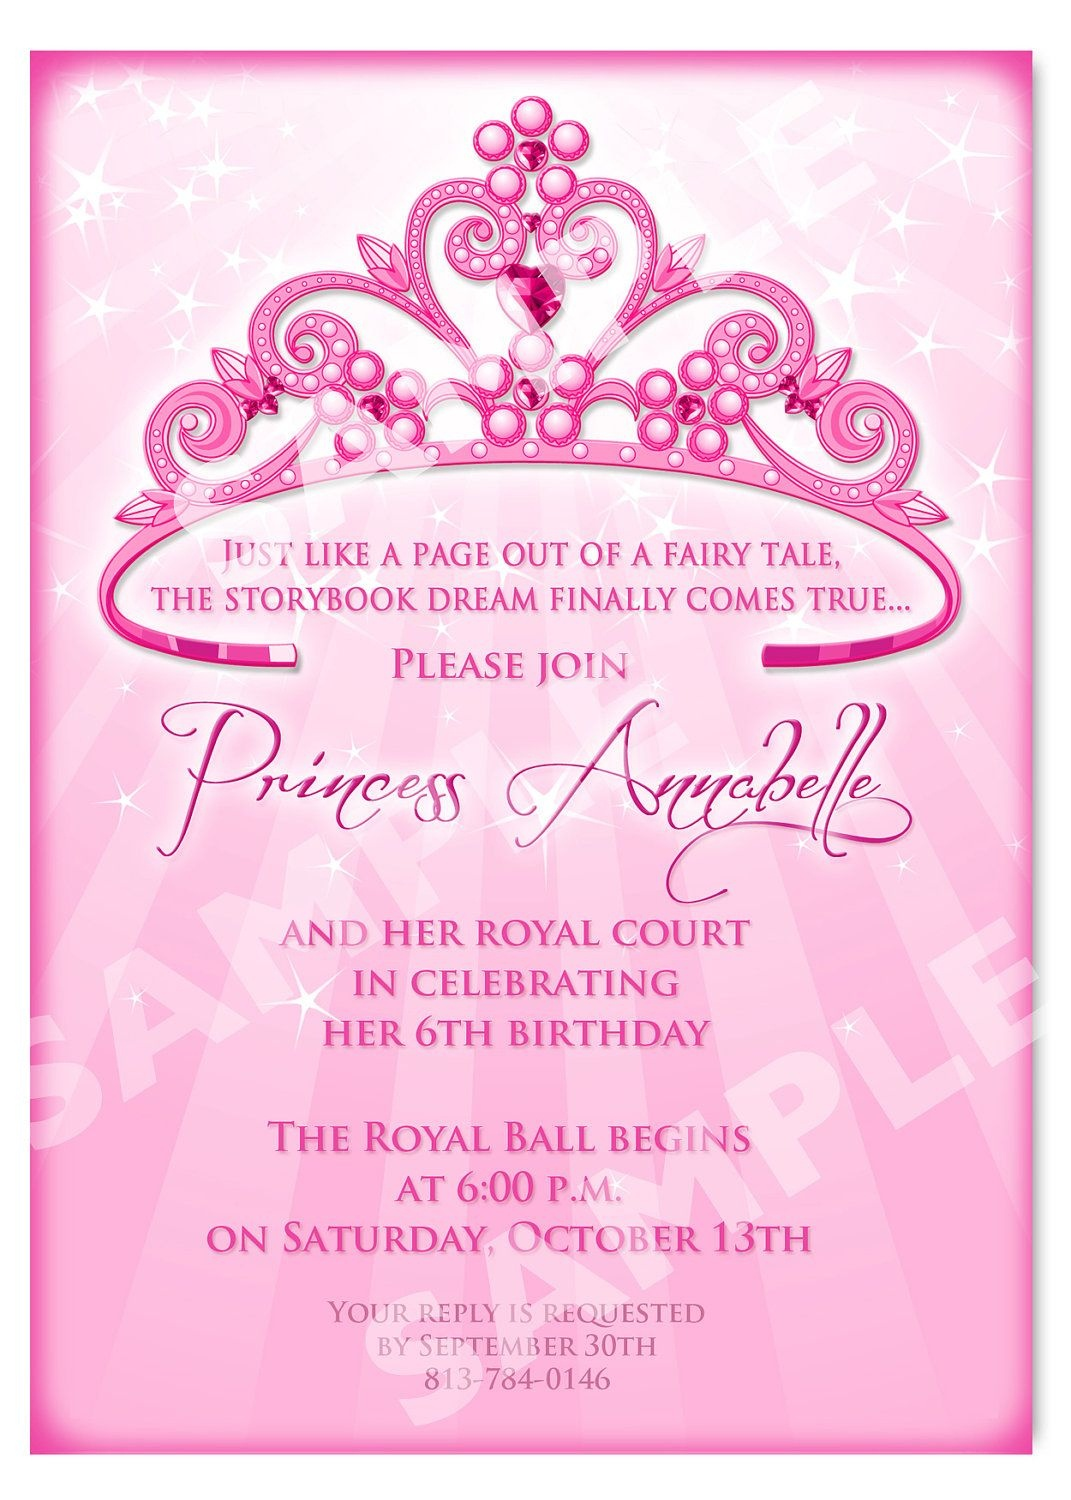 Free Printable Princess Birthday Invitation Templates | Kids - Free Printable Personalized Birthday Invitation Cards